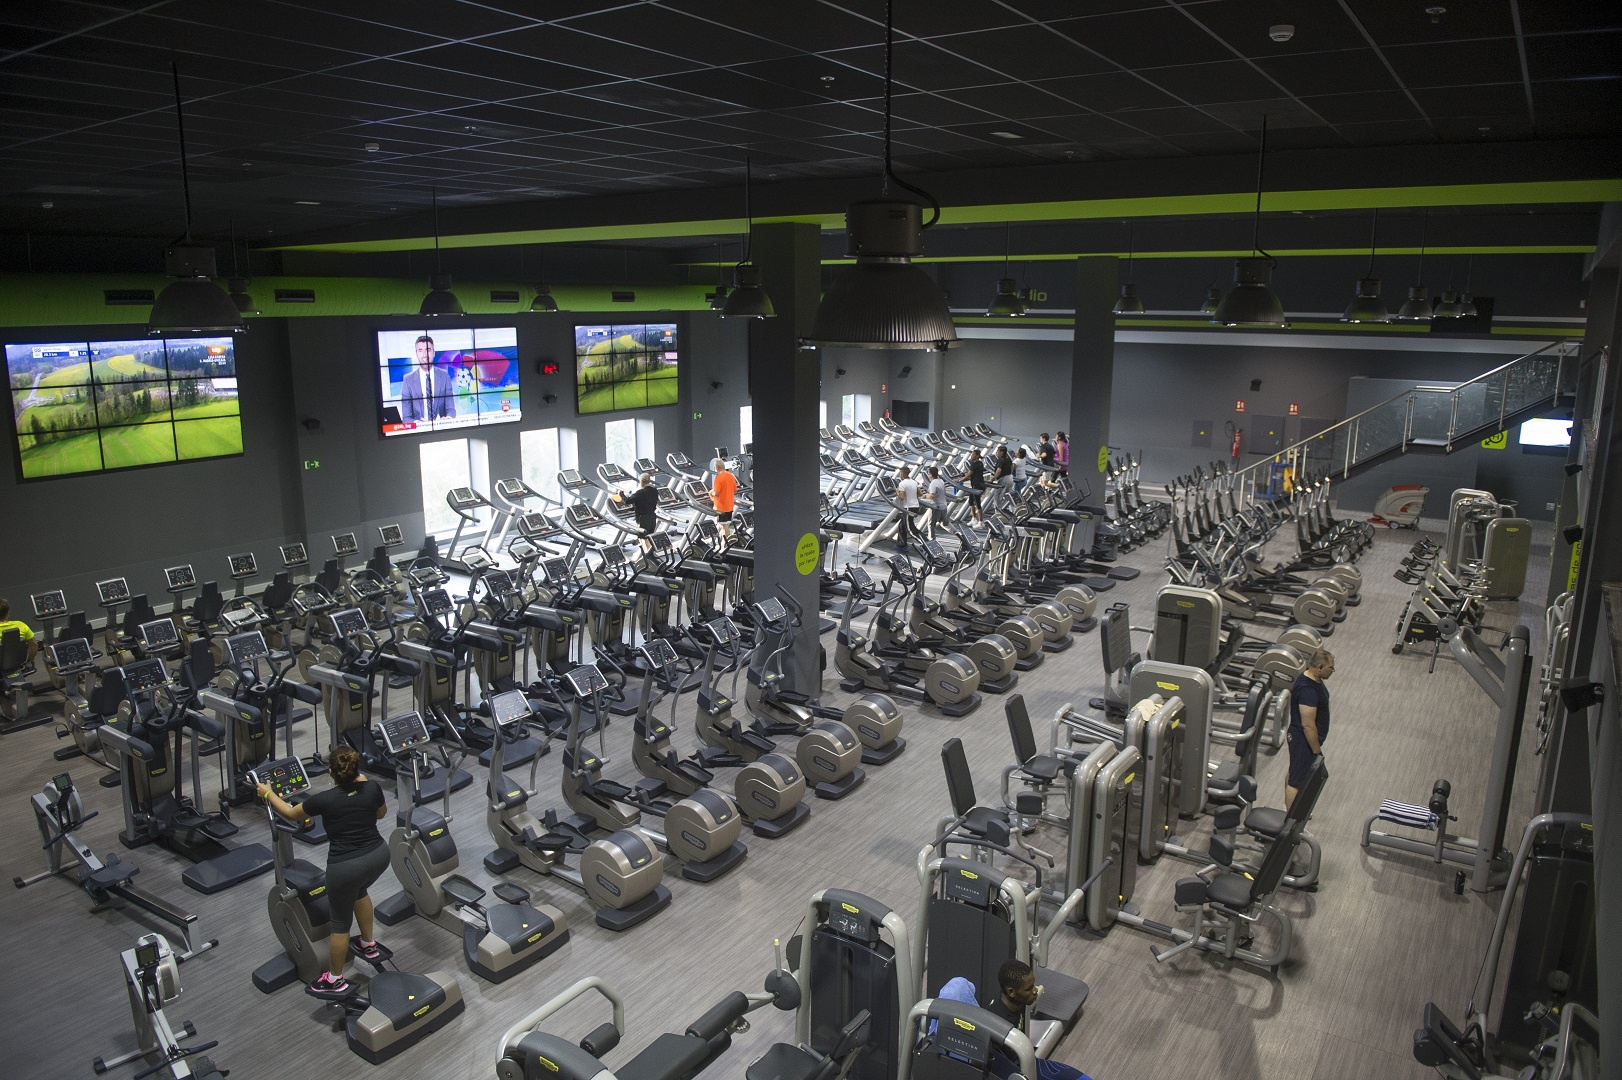 Gimnasio en villaverde madrid madrid for Gimnasio 24h madrid